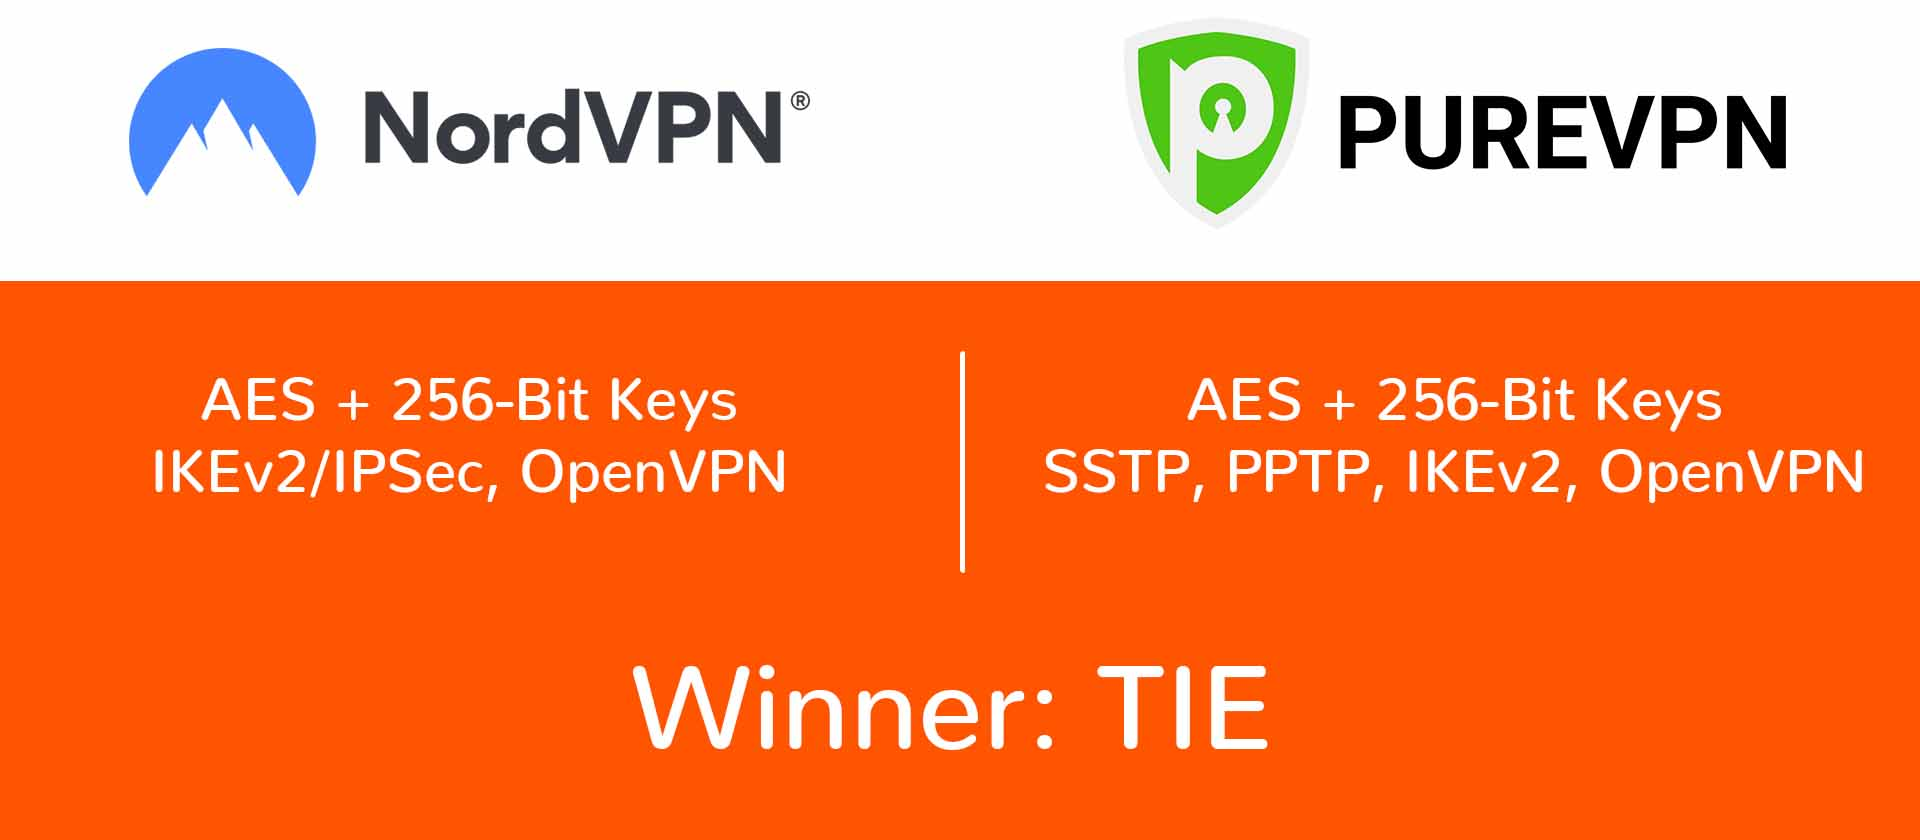 vpn protocol compared